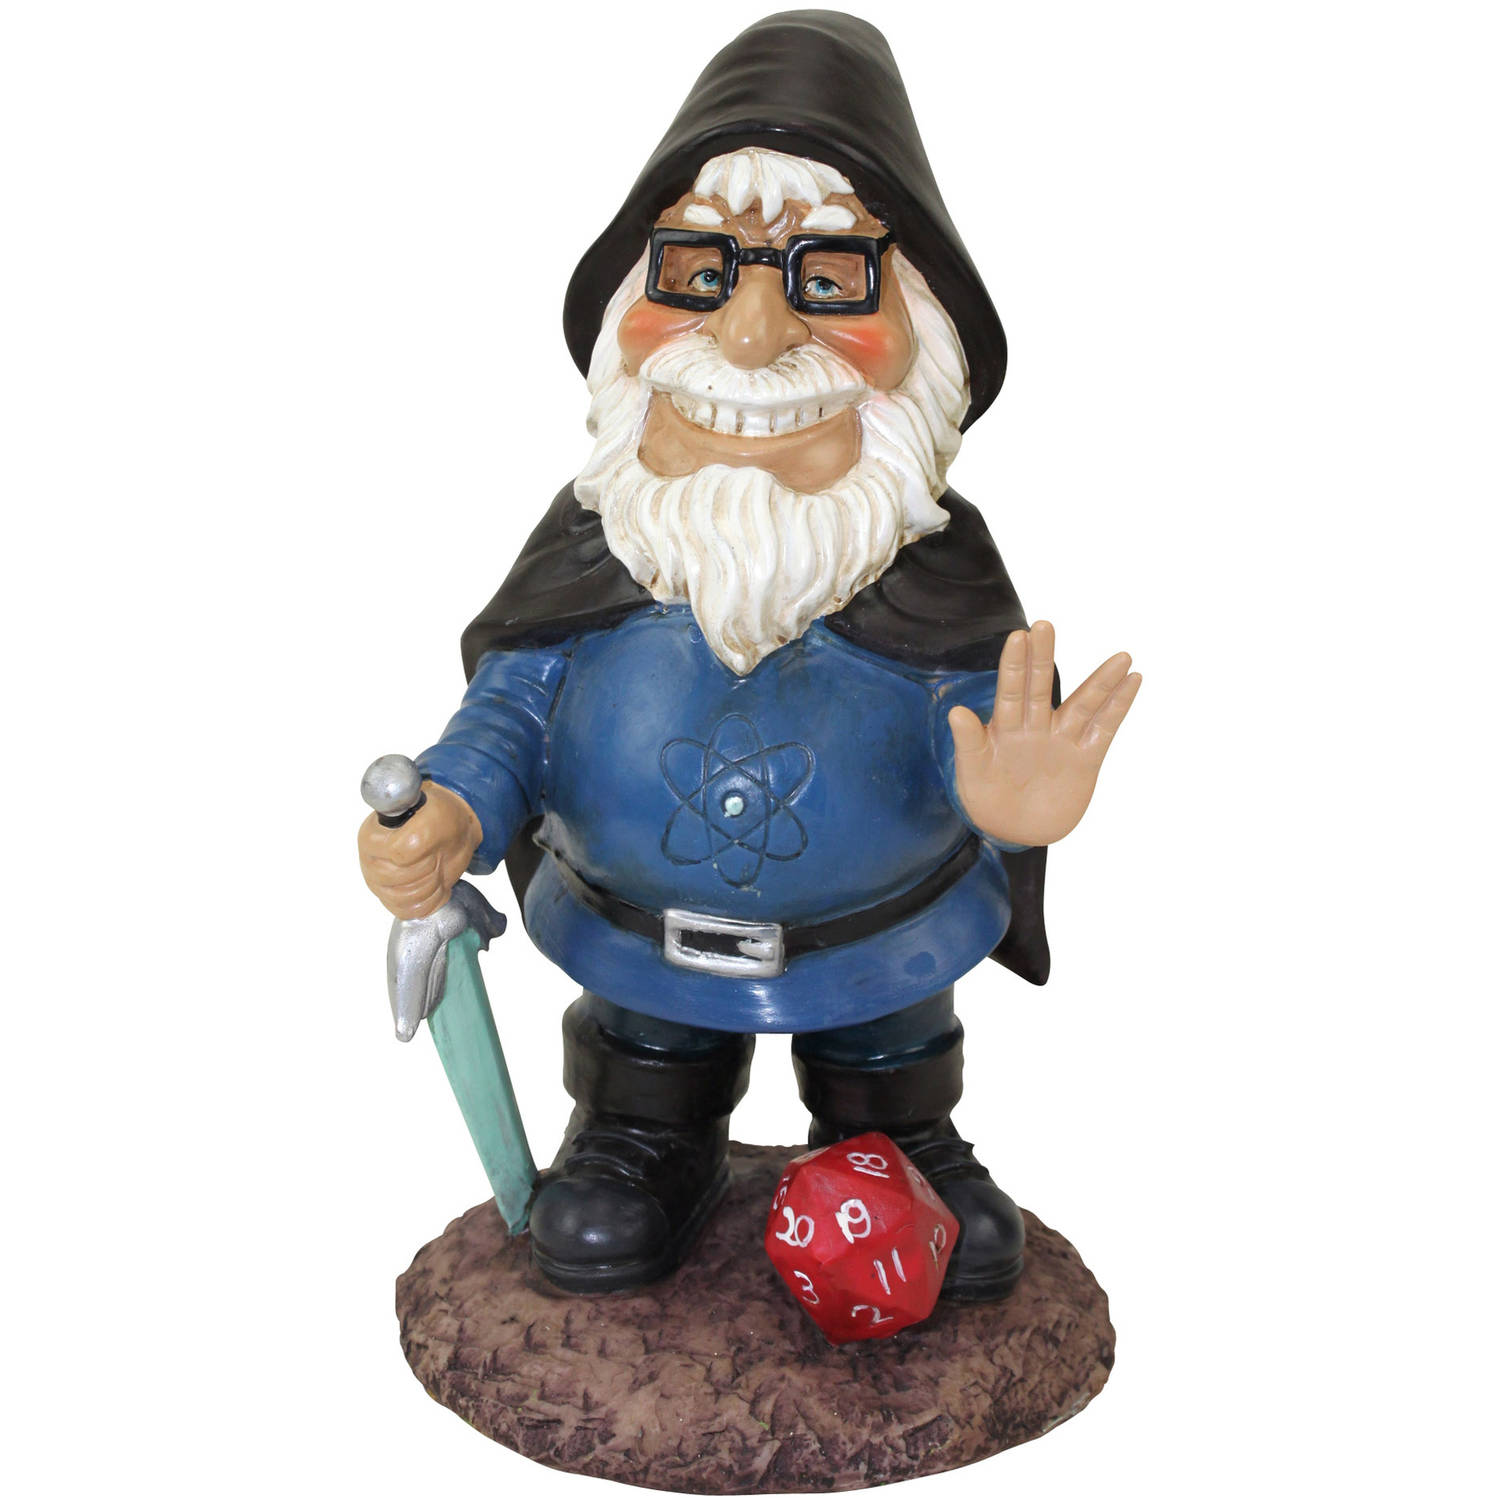 Beard-O The Geeky Garden Gnome by Generic